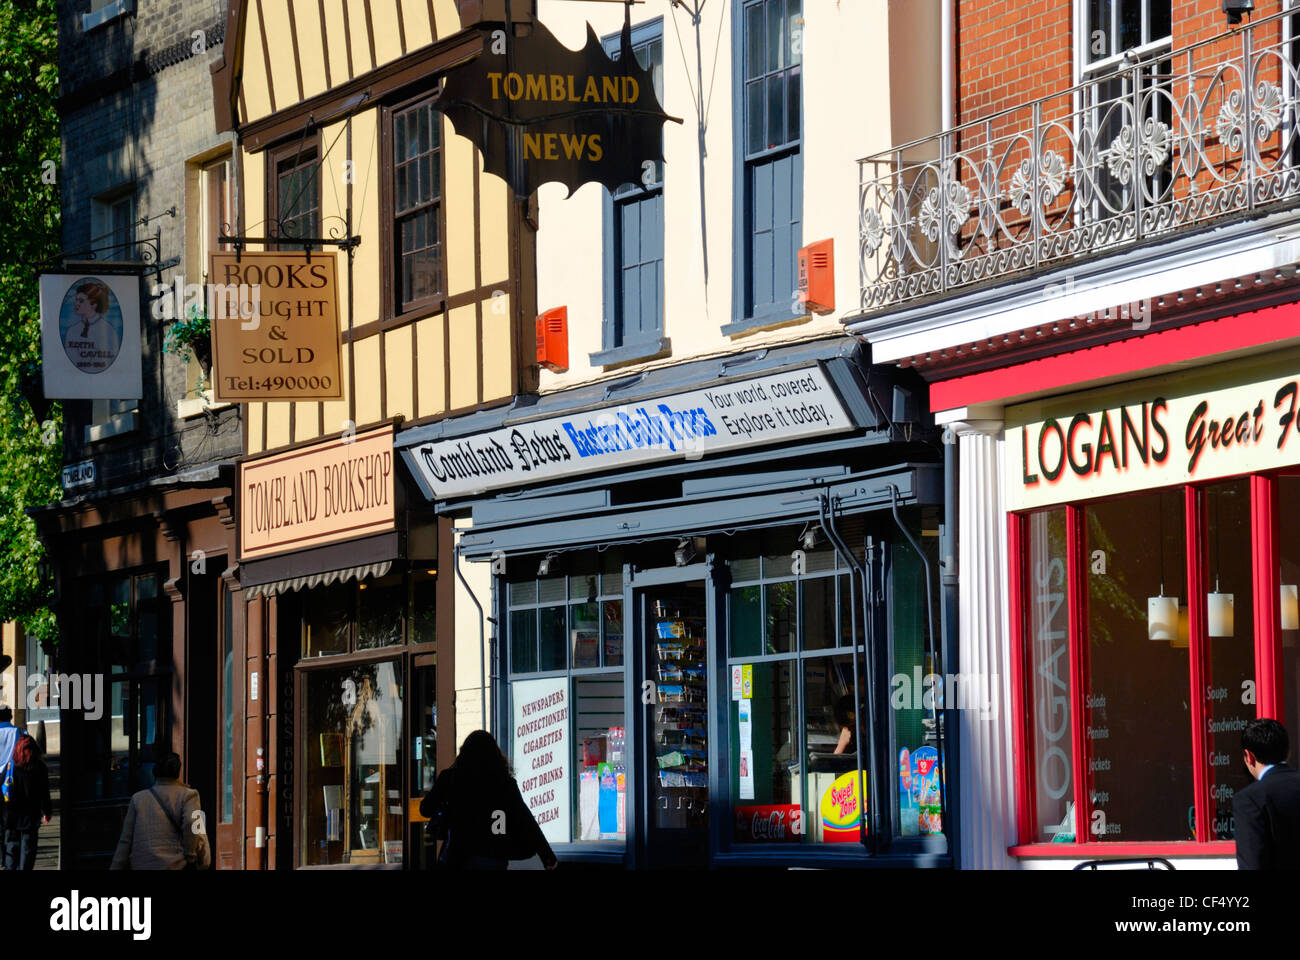 Shop fronts in the historic Tombland area, site of the original marketplace of Anglo-Saxon Norwich. - Stock Image